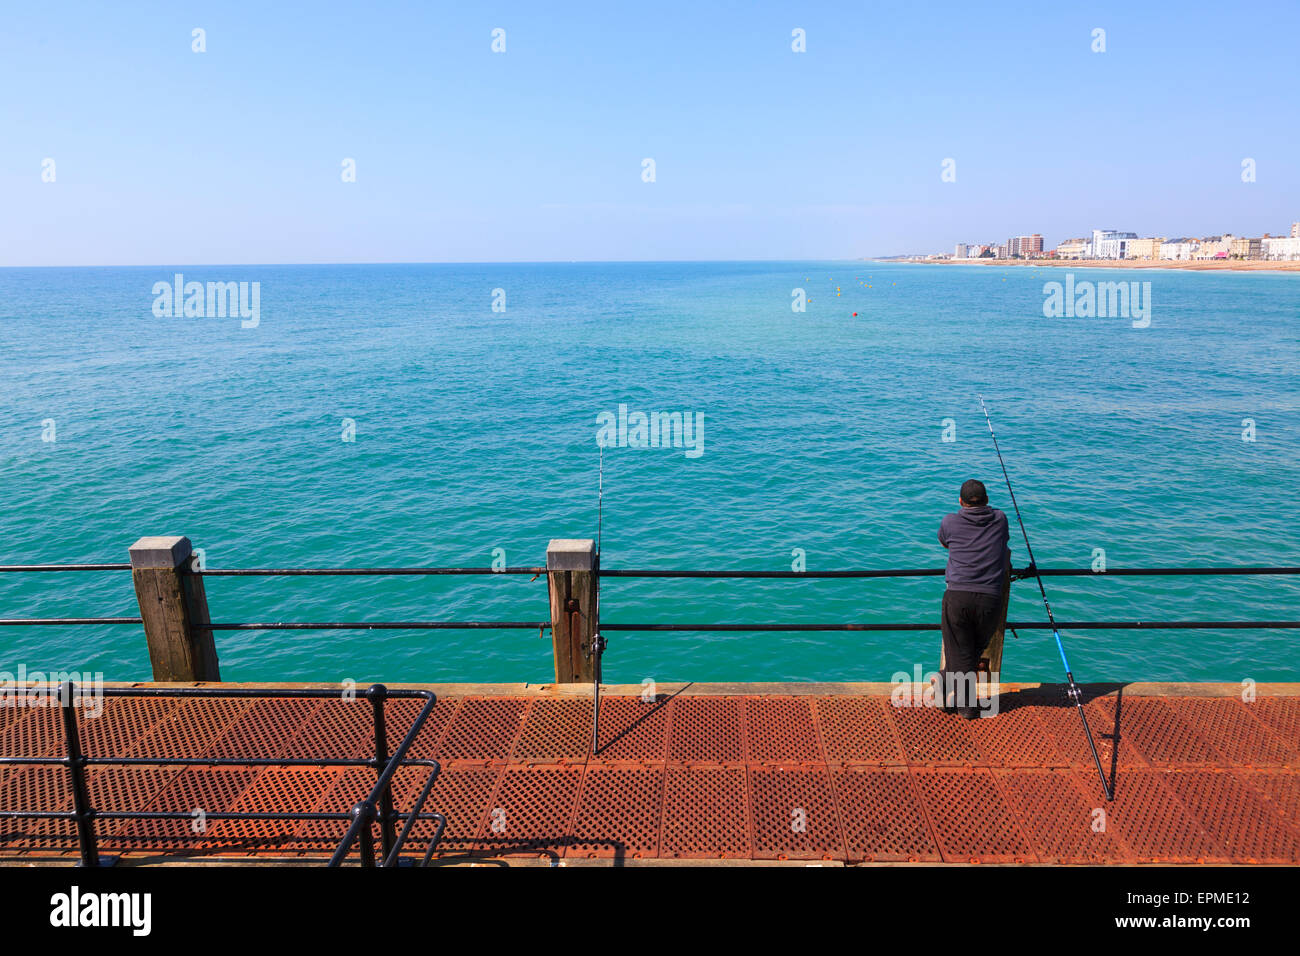 Man casually leaning on railings of Worthing Pier fishing - Stock Image